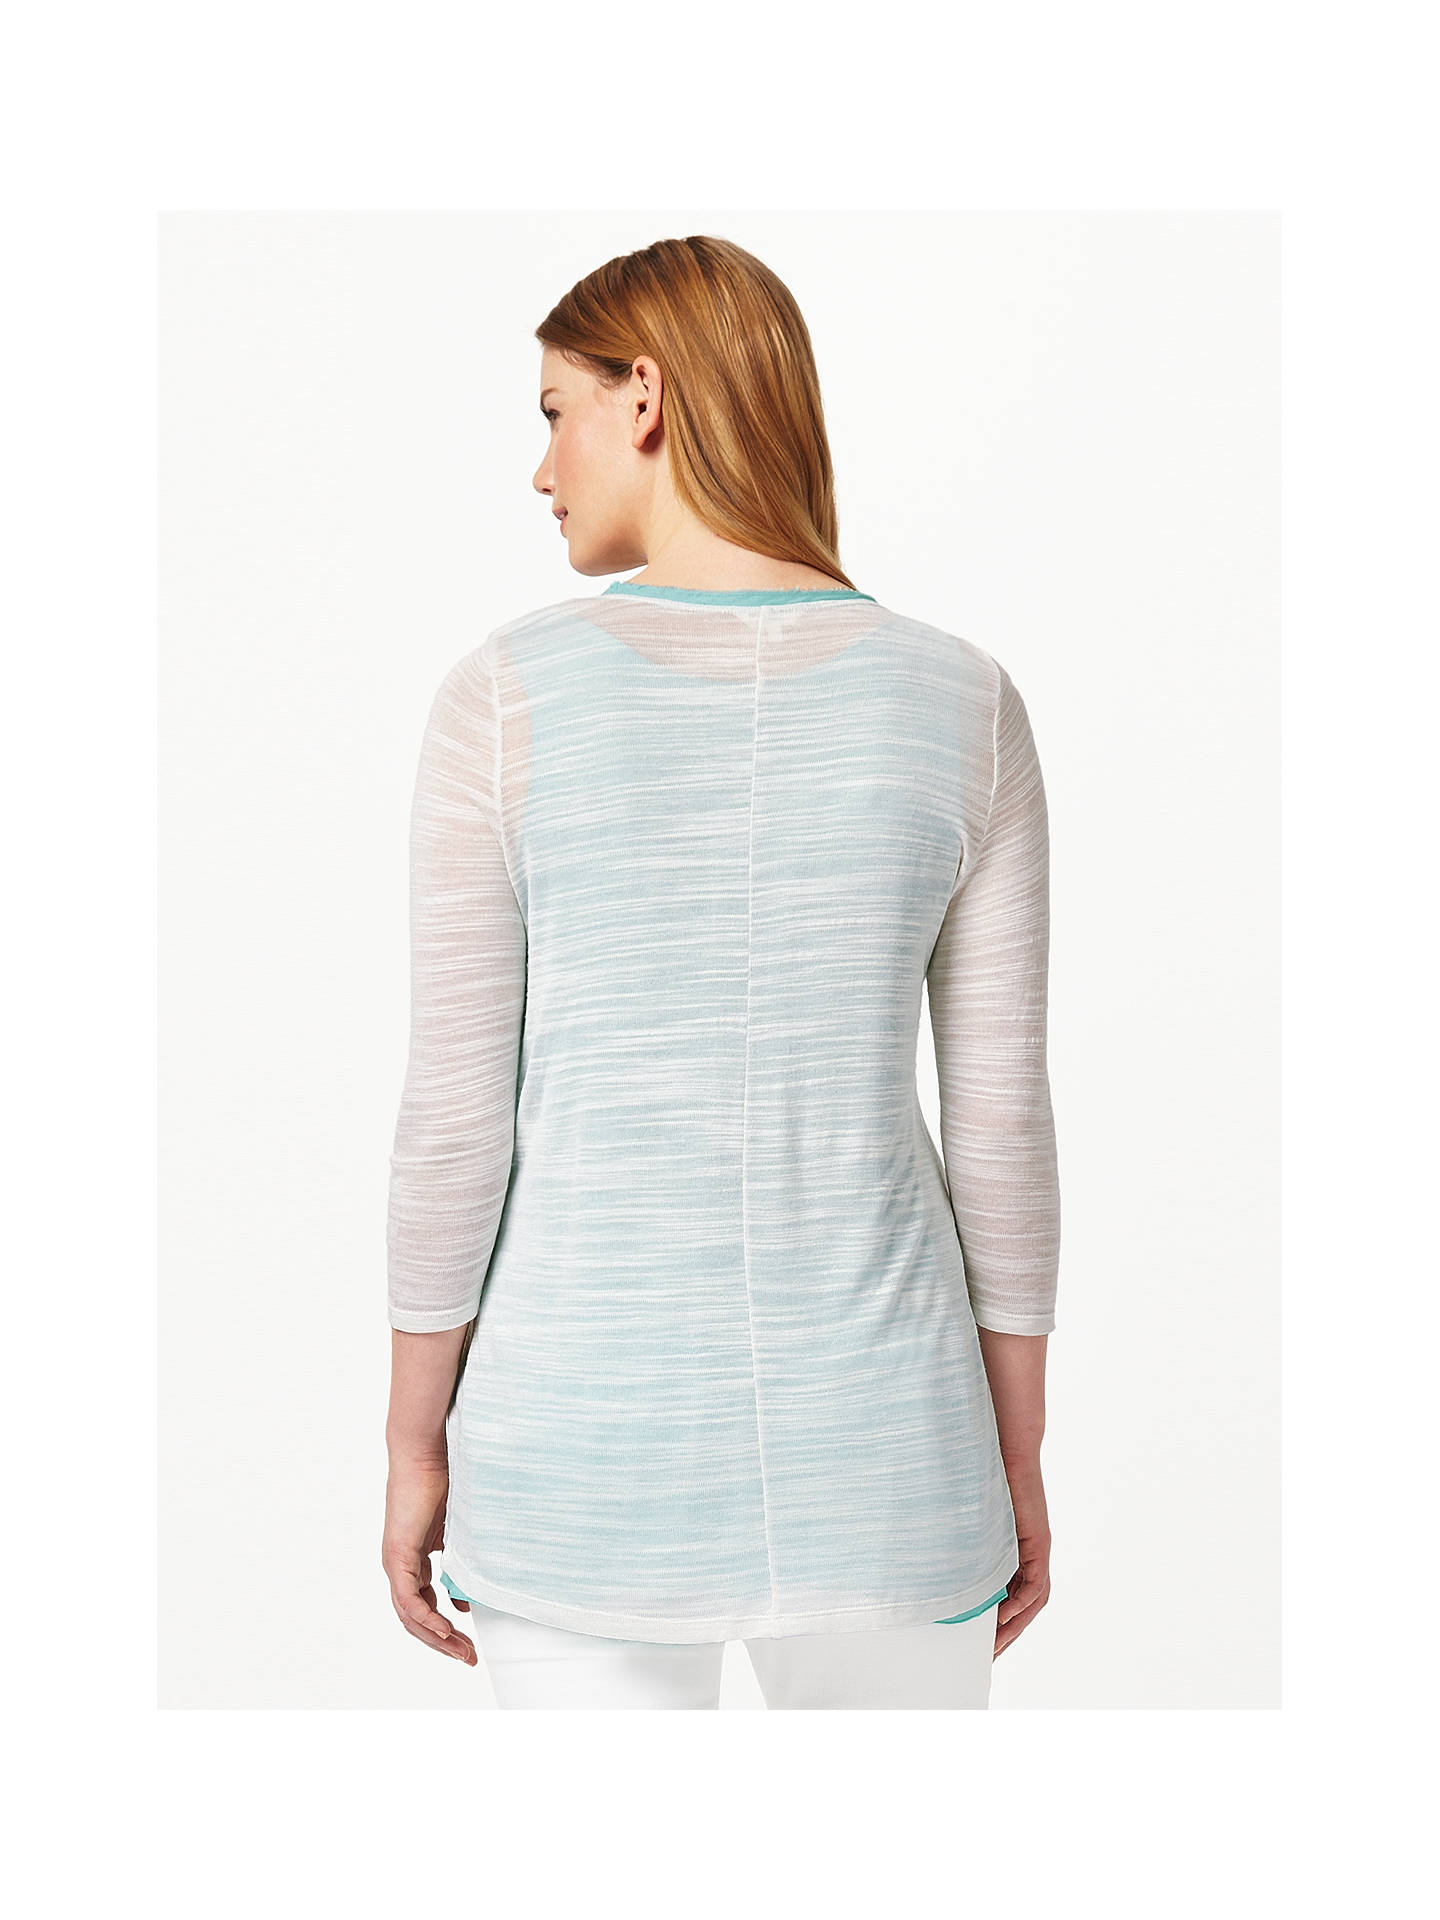 BuyStudio 8 Milly Top, Cream/Aqua, 12 Online at johnlewis.com